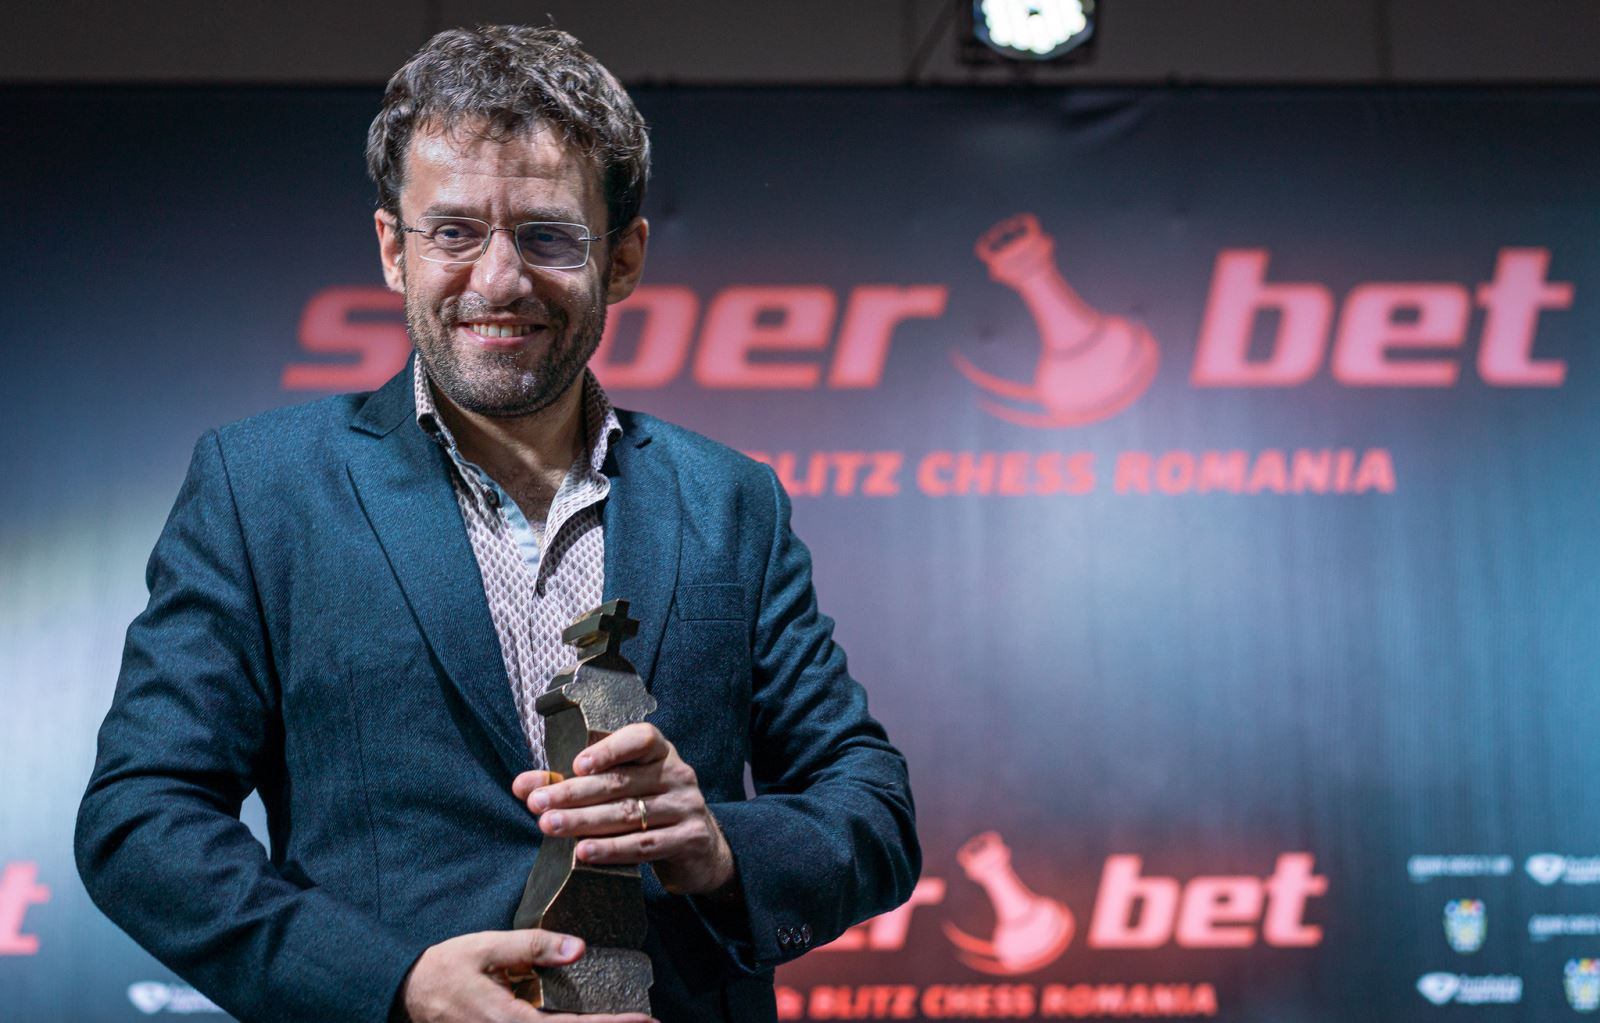 Aronian with trophy